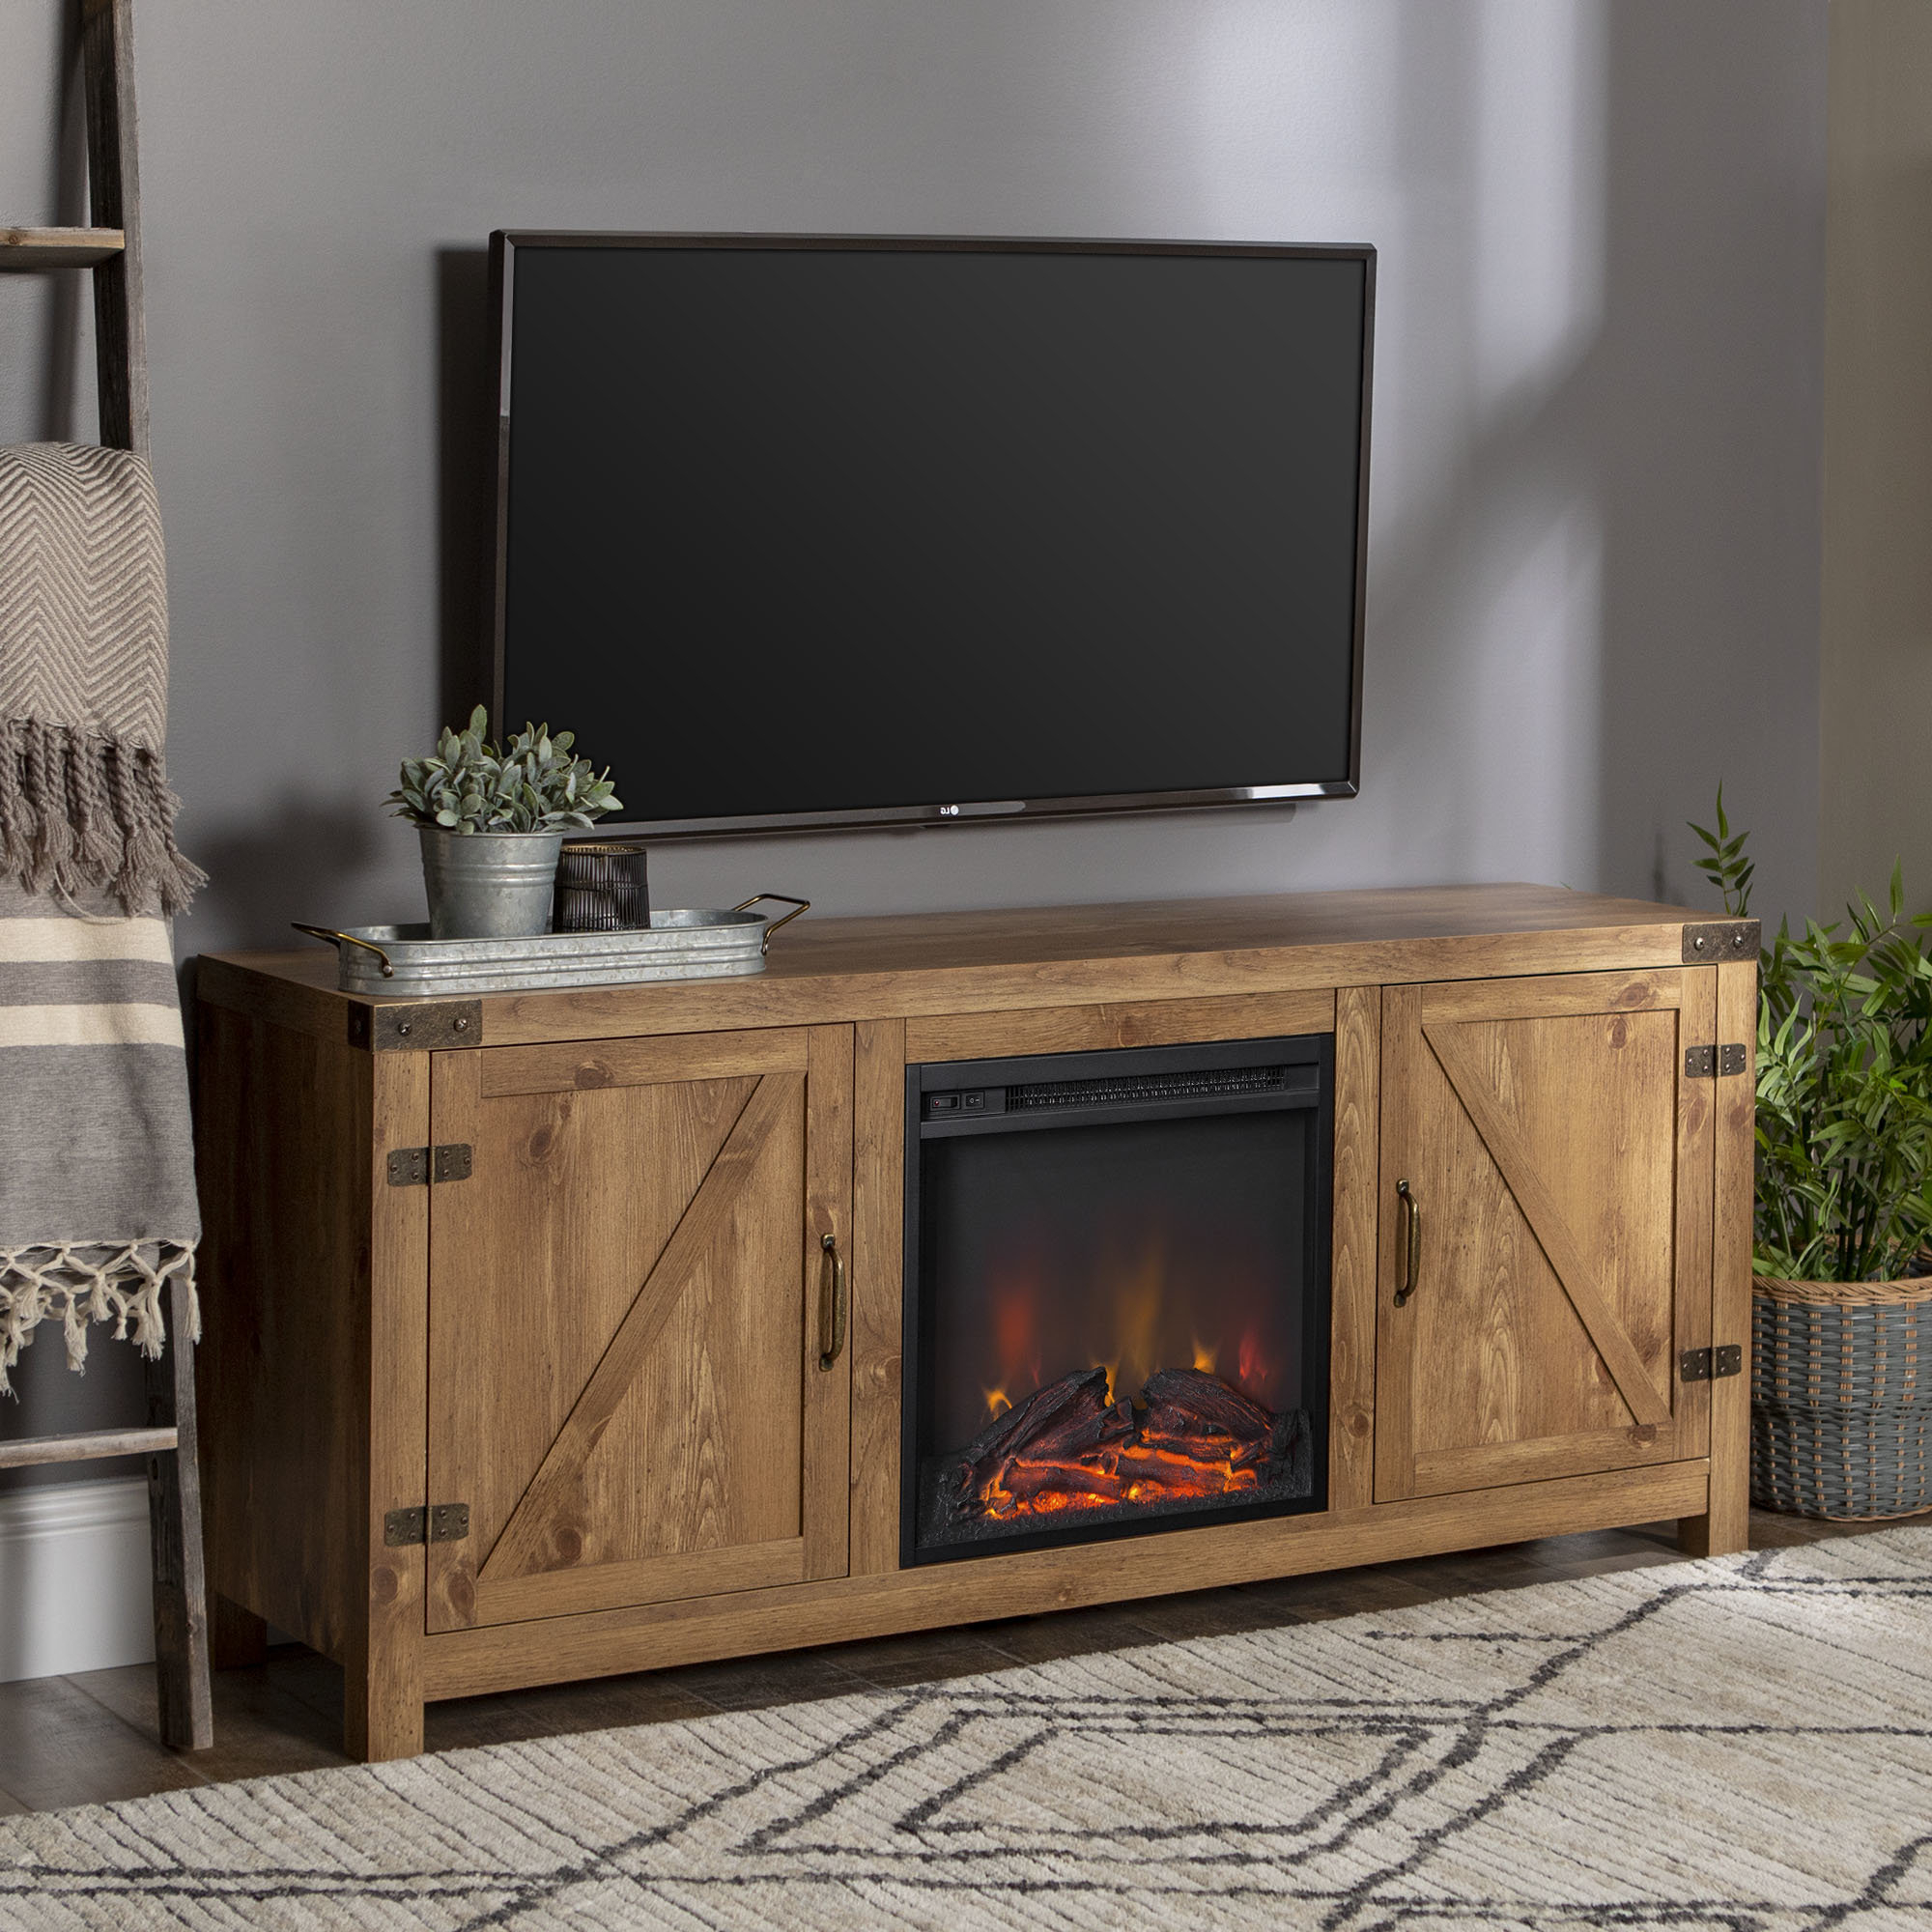 60 69 Inch Tv Stand Fireplaces You'll Love (View 2 of 20)